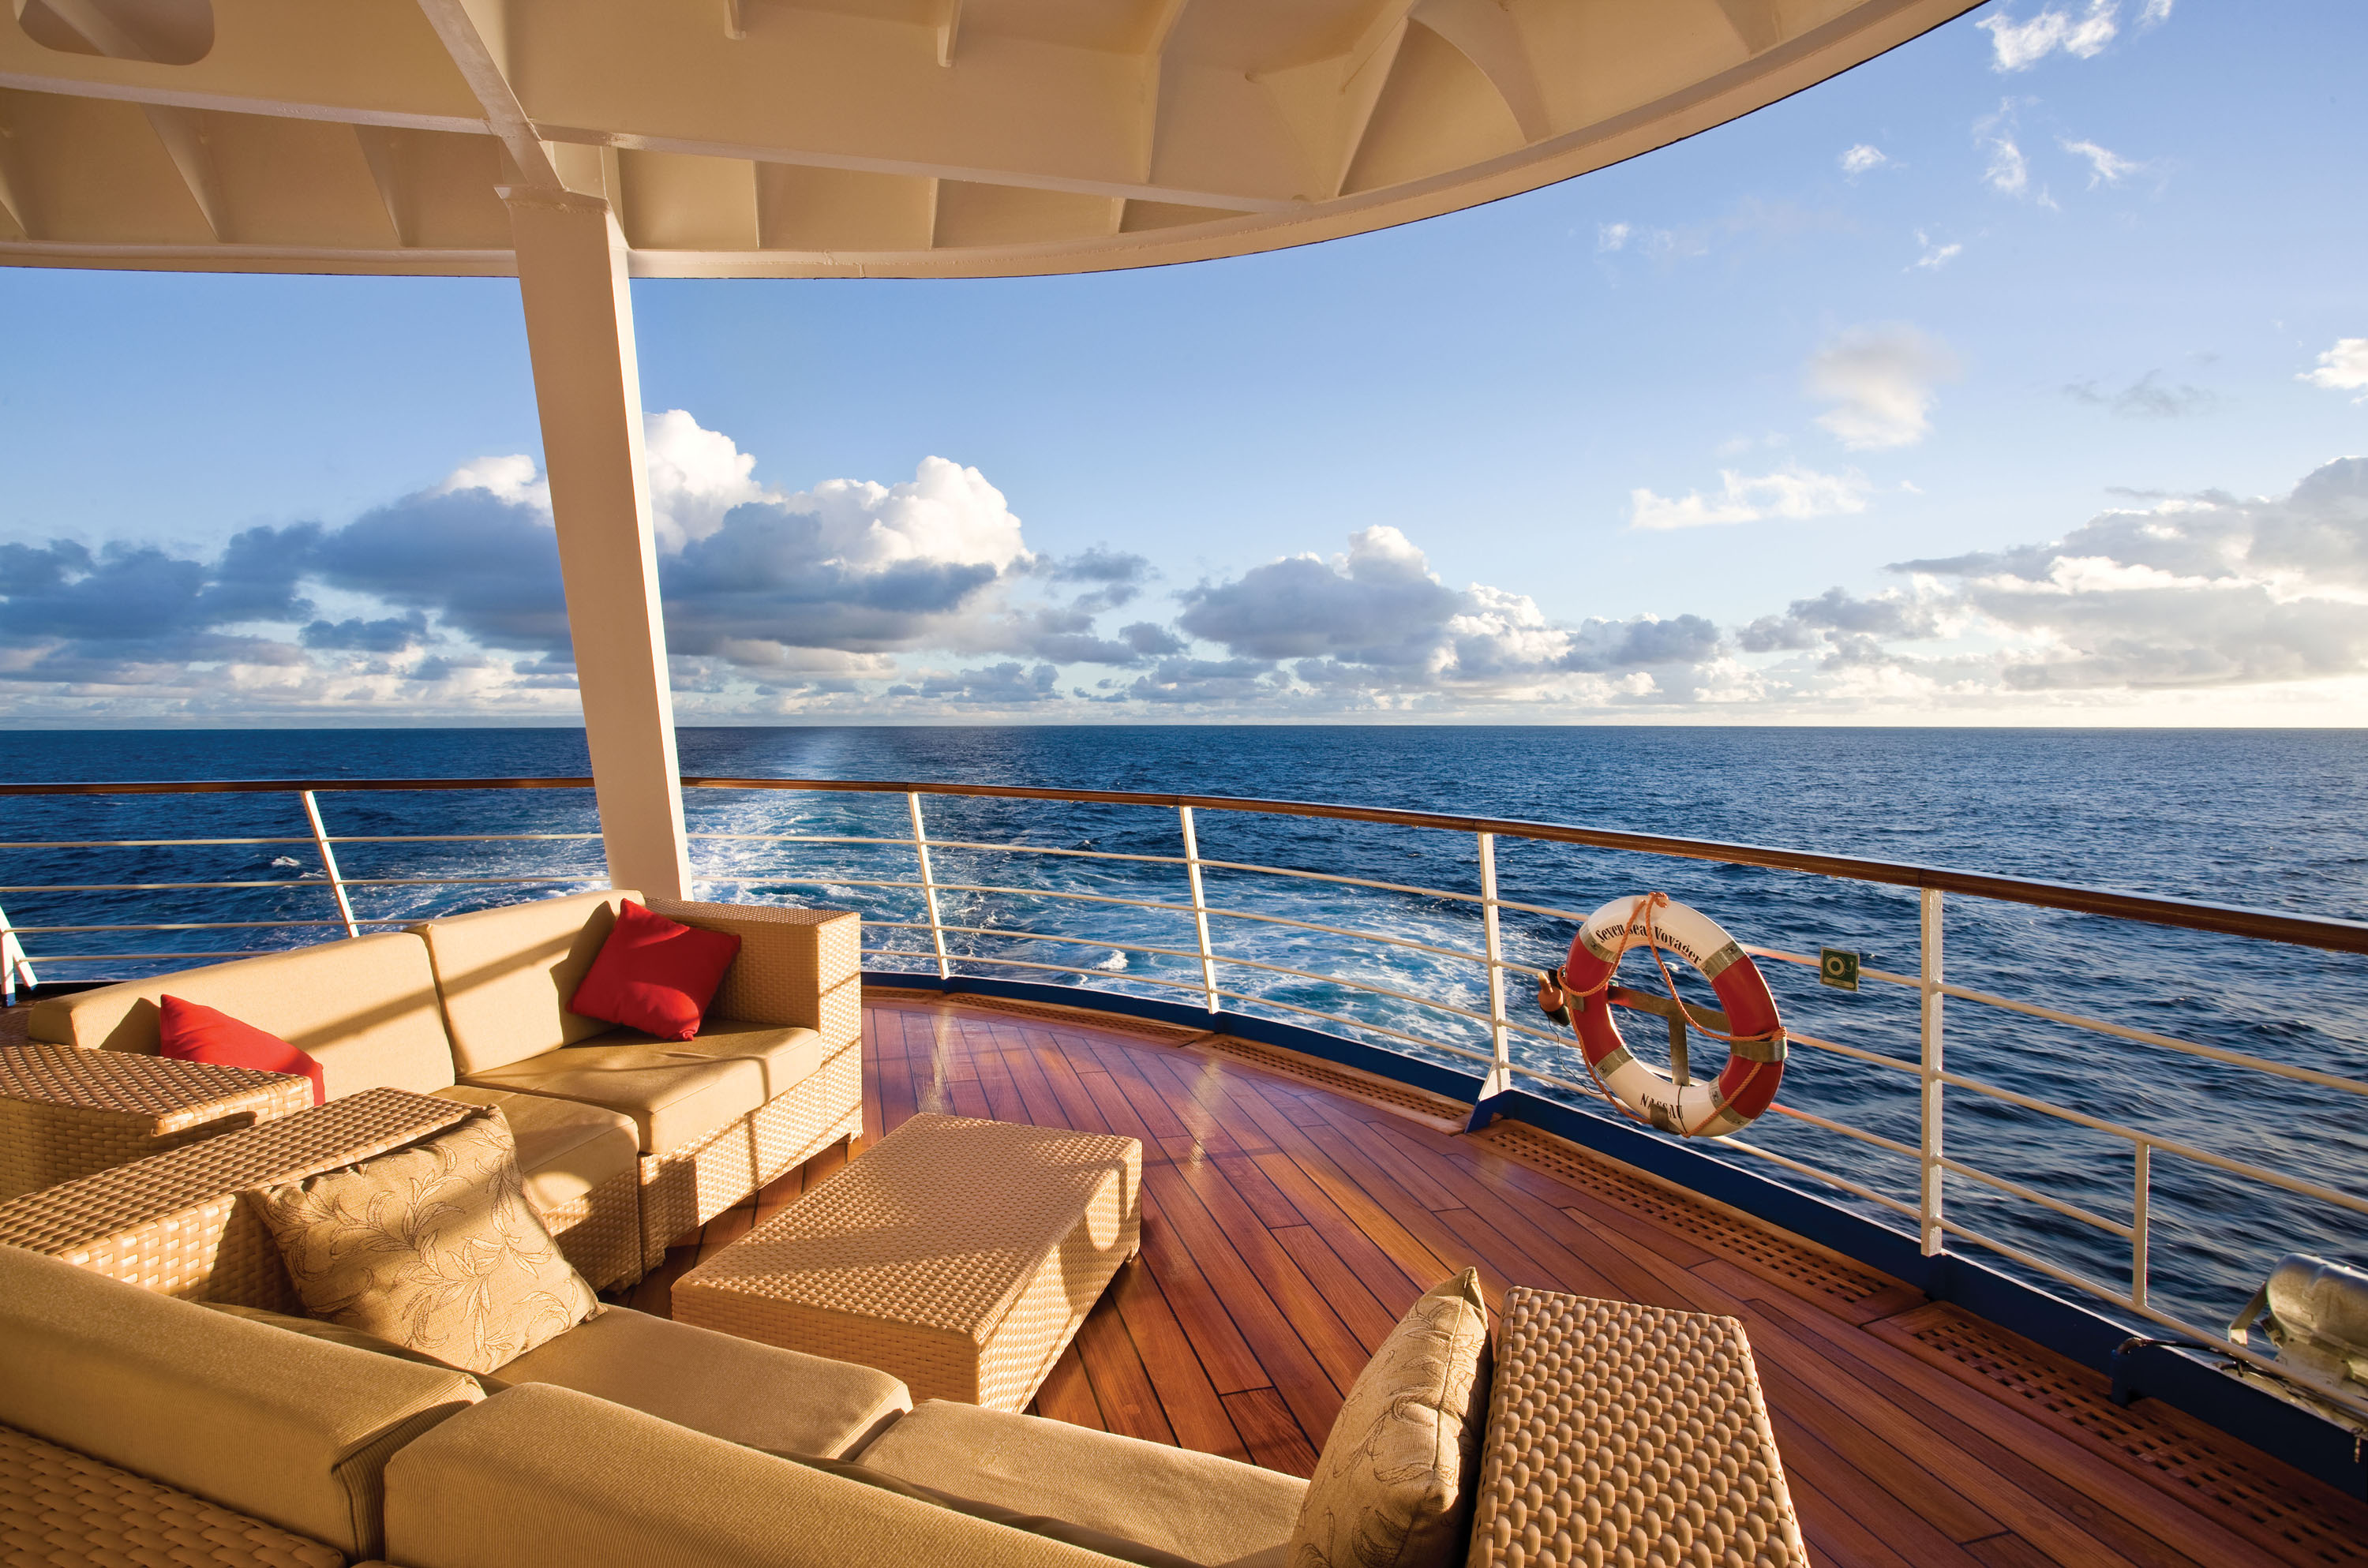 Outside Aft Deck - Deck 5 Seven Seas Voyager - Regent Seven Seas Cruises